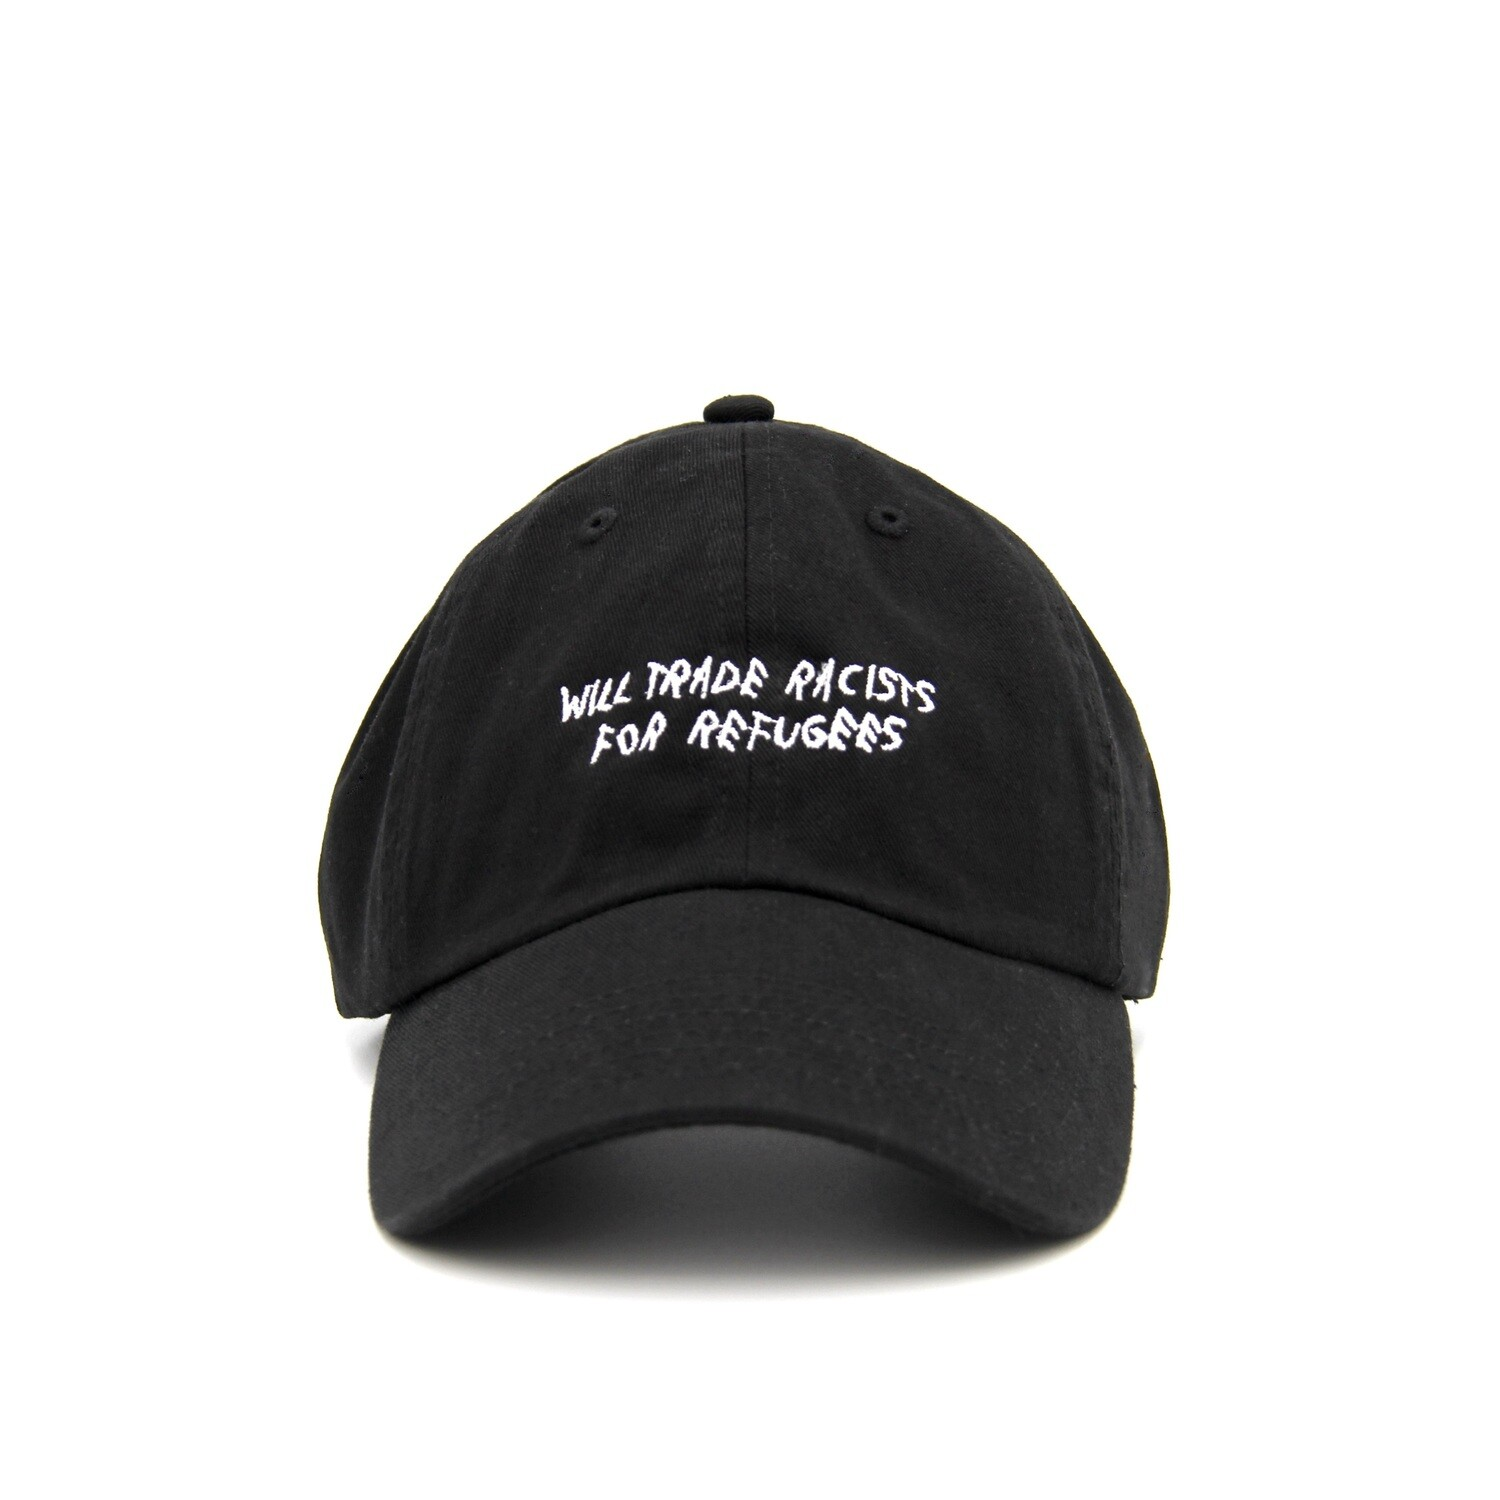 Trade Racists For Refugees Black Dad Cap